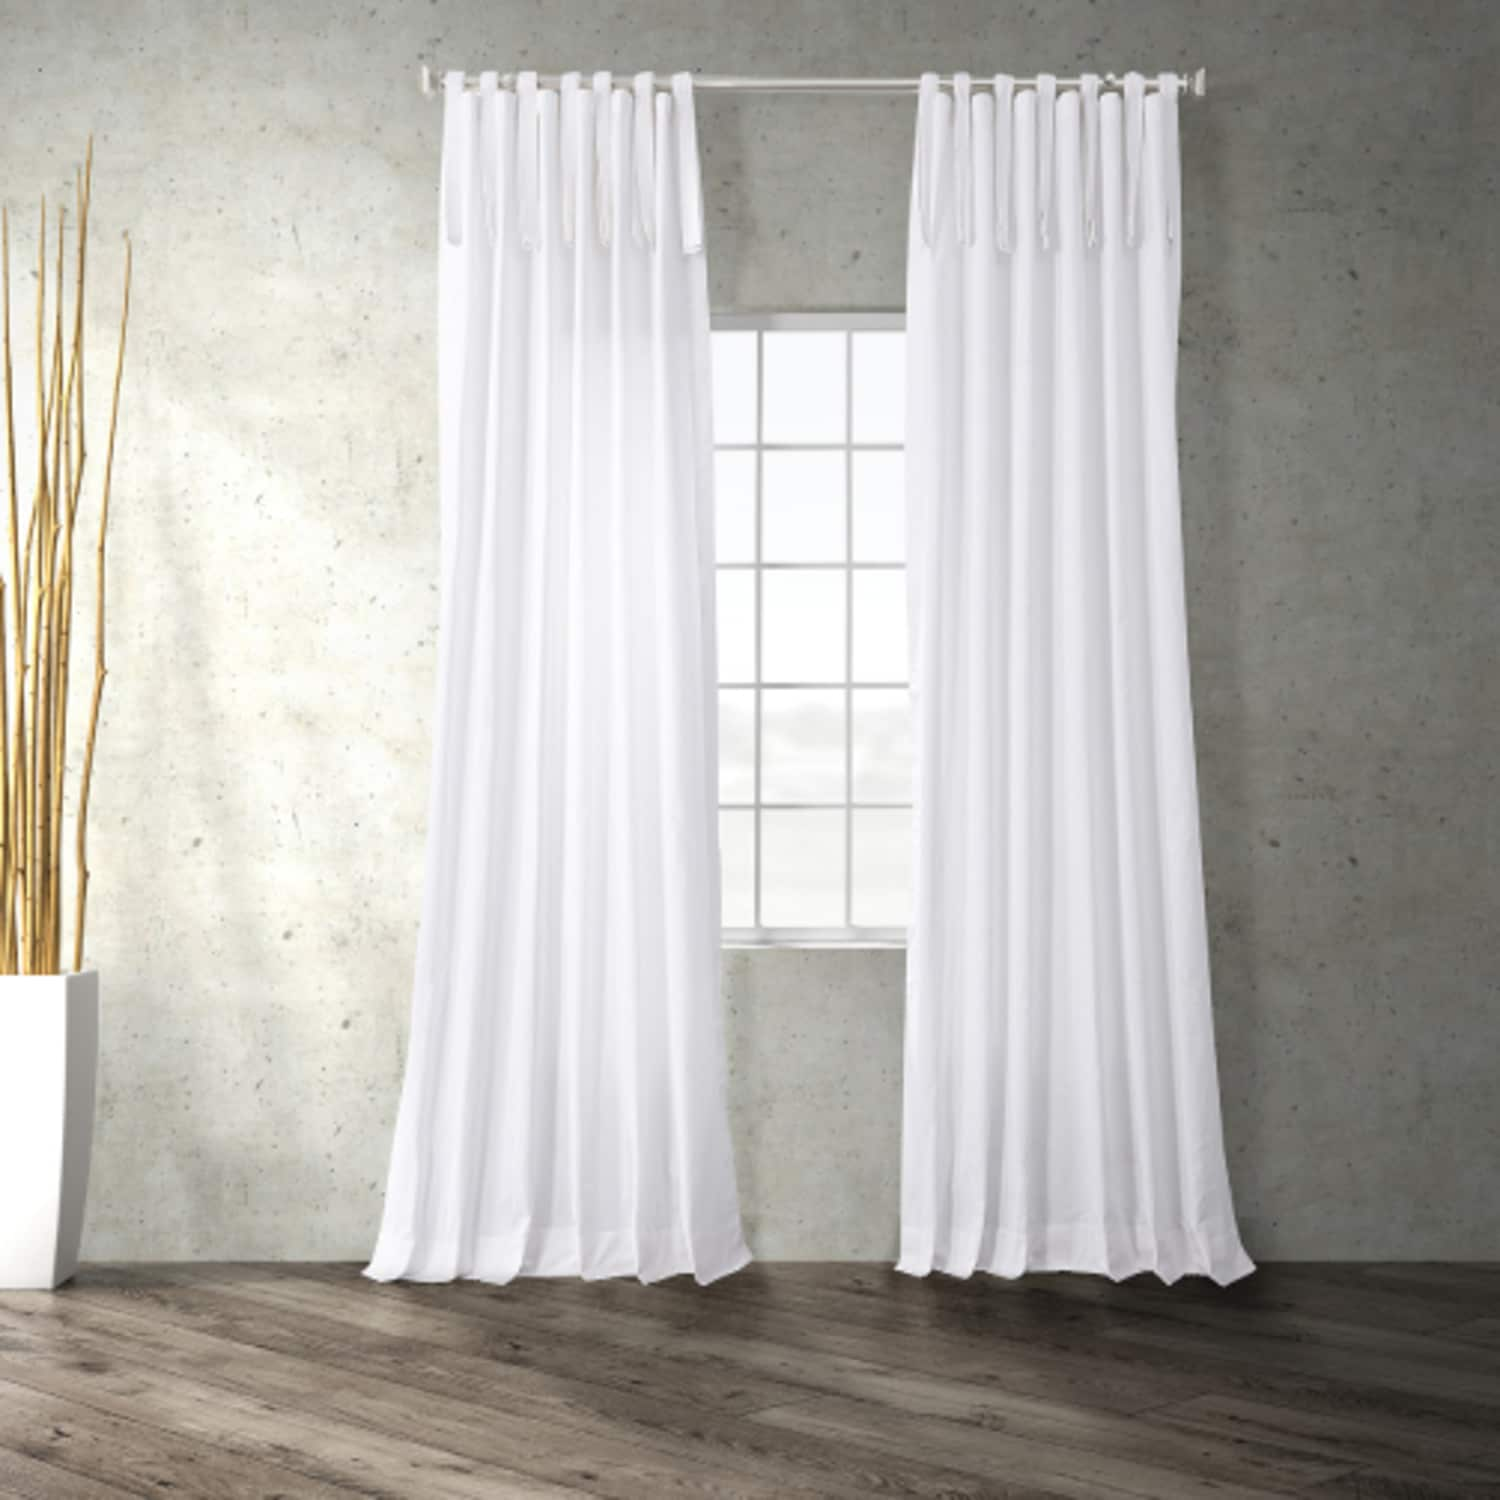 Whisper White Solid Cotton Tie-Top Curtain